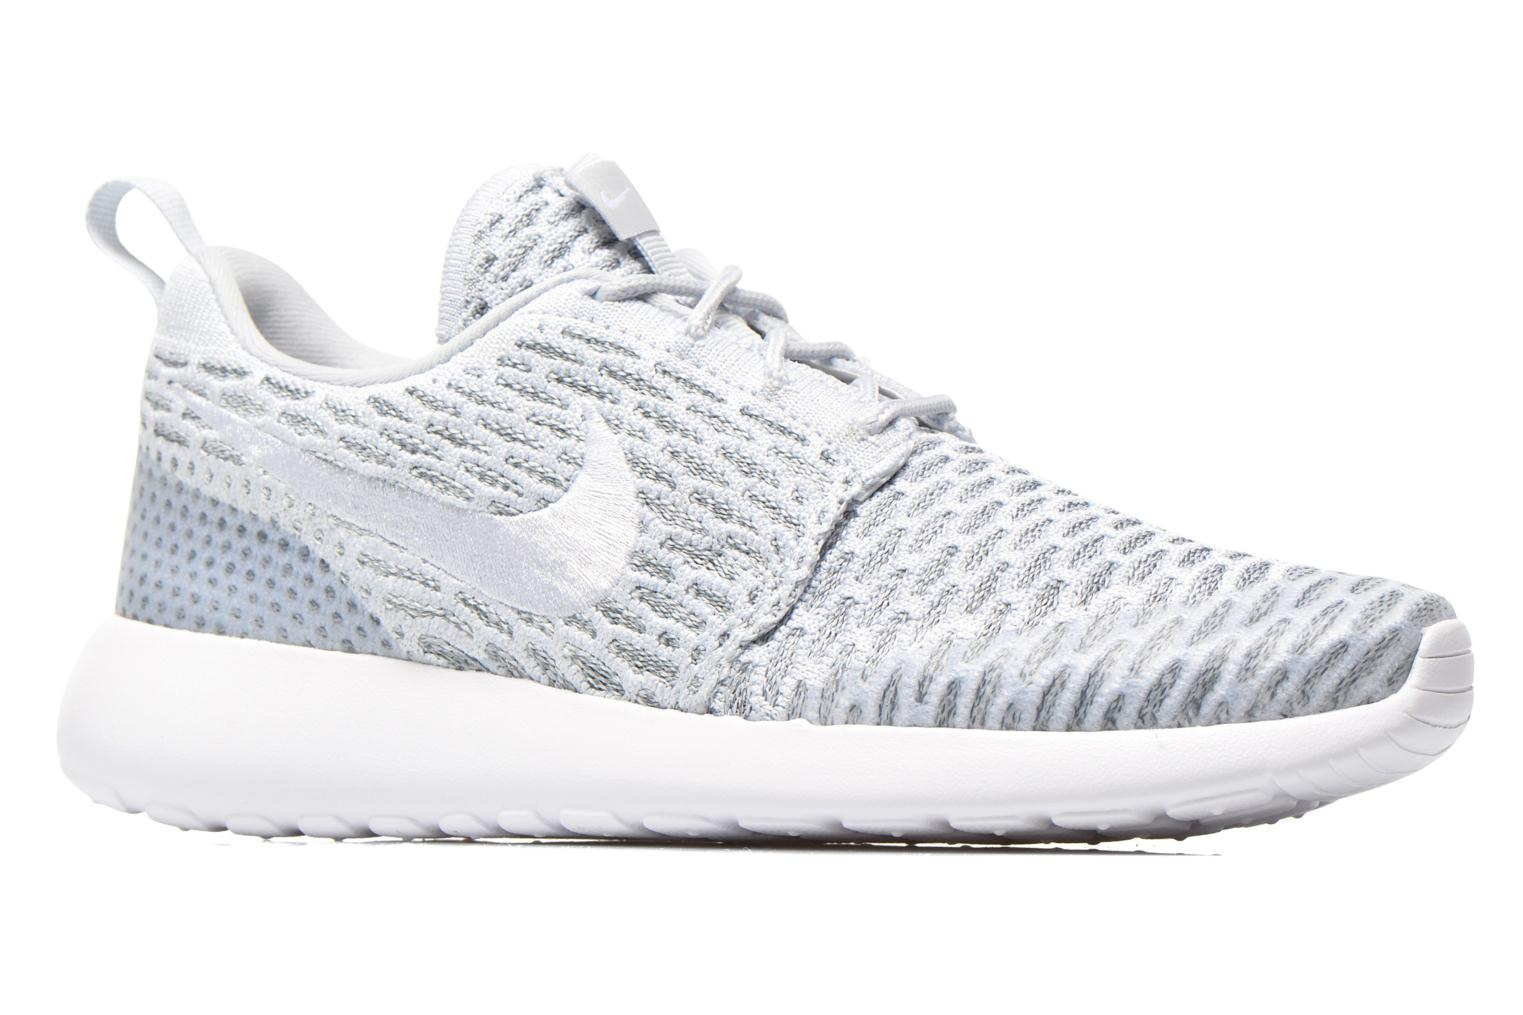 Wmns Roshe One Flyknit Pure Platinum/White-Cool Grey